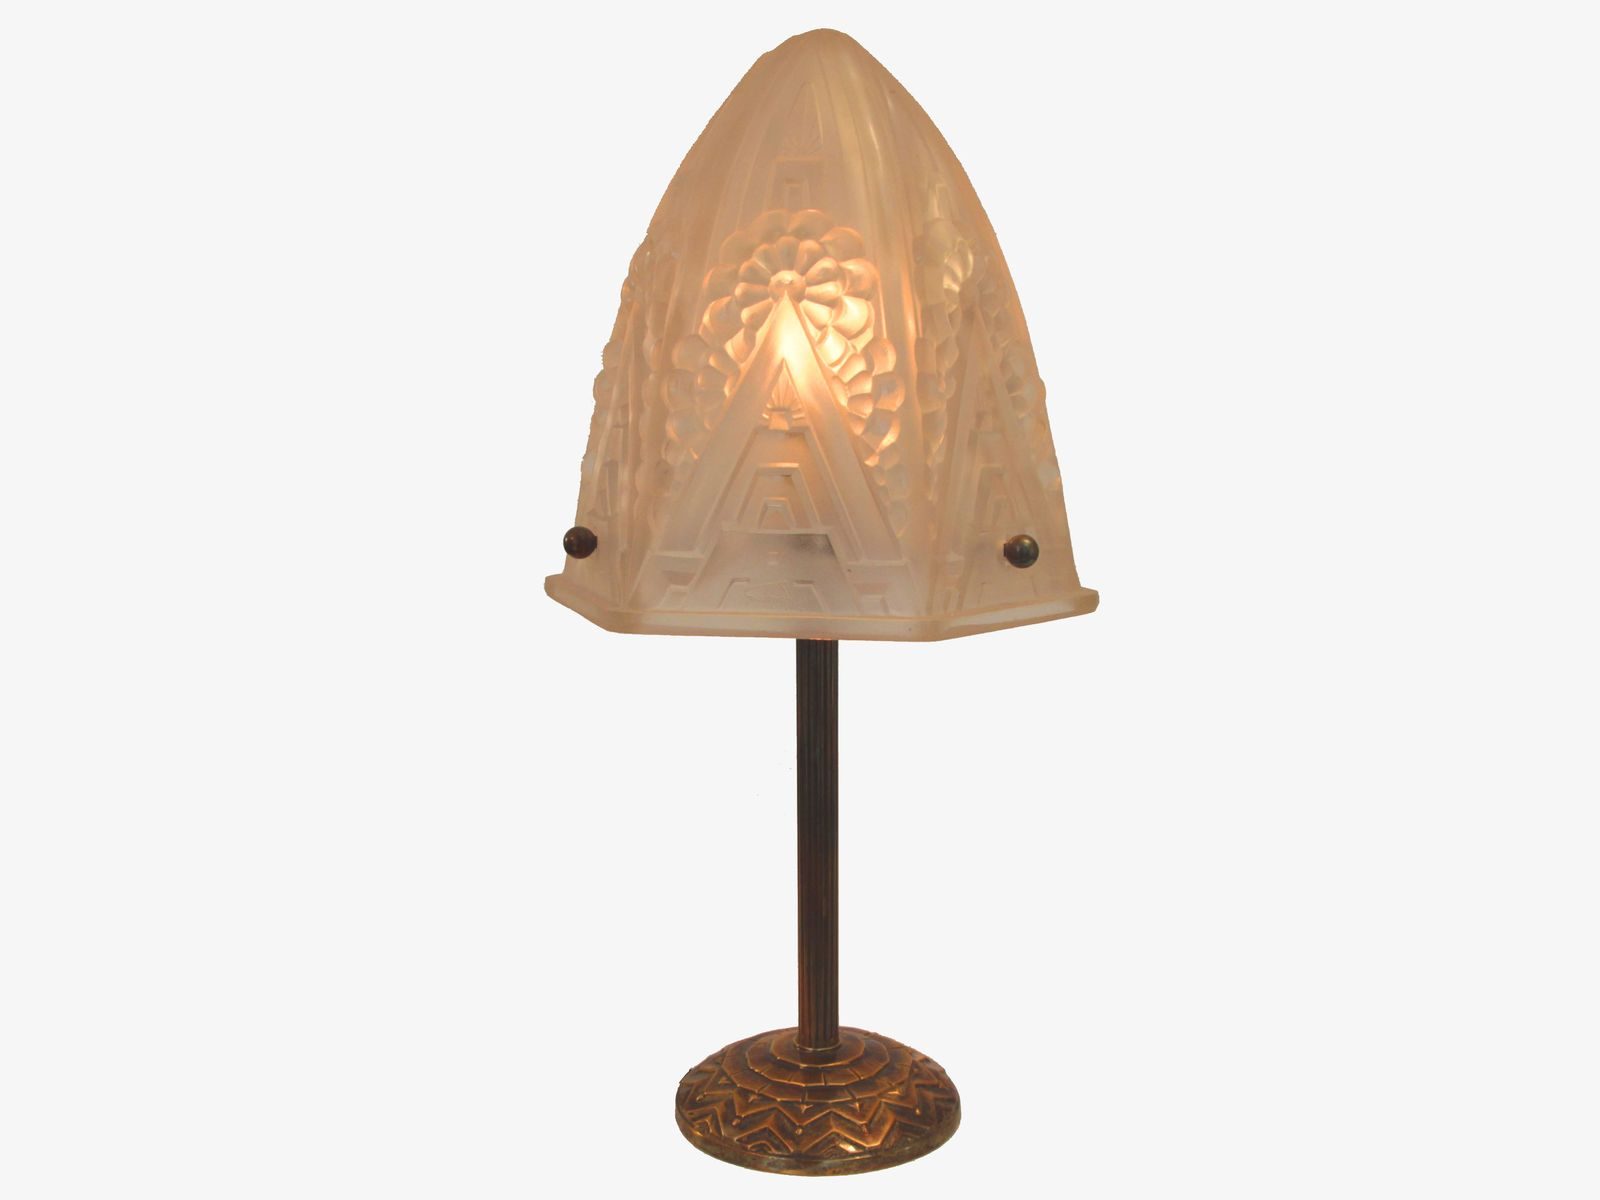 Art deco style table lamp by henri mouynet 1930s for sale for Art deco style lamp